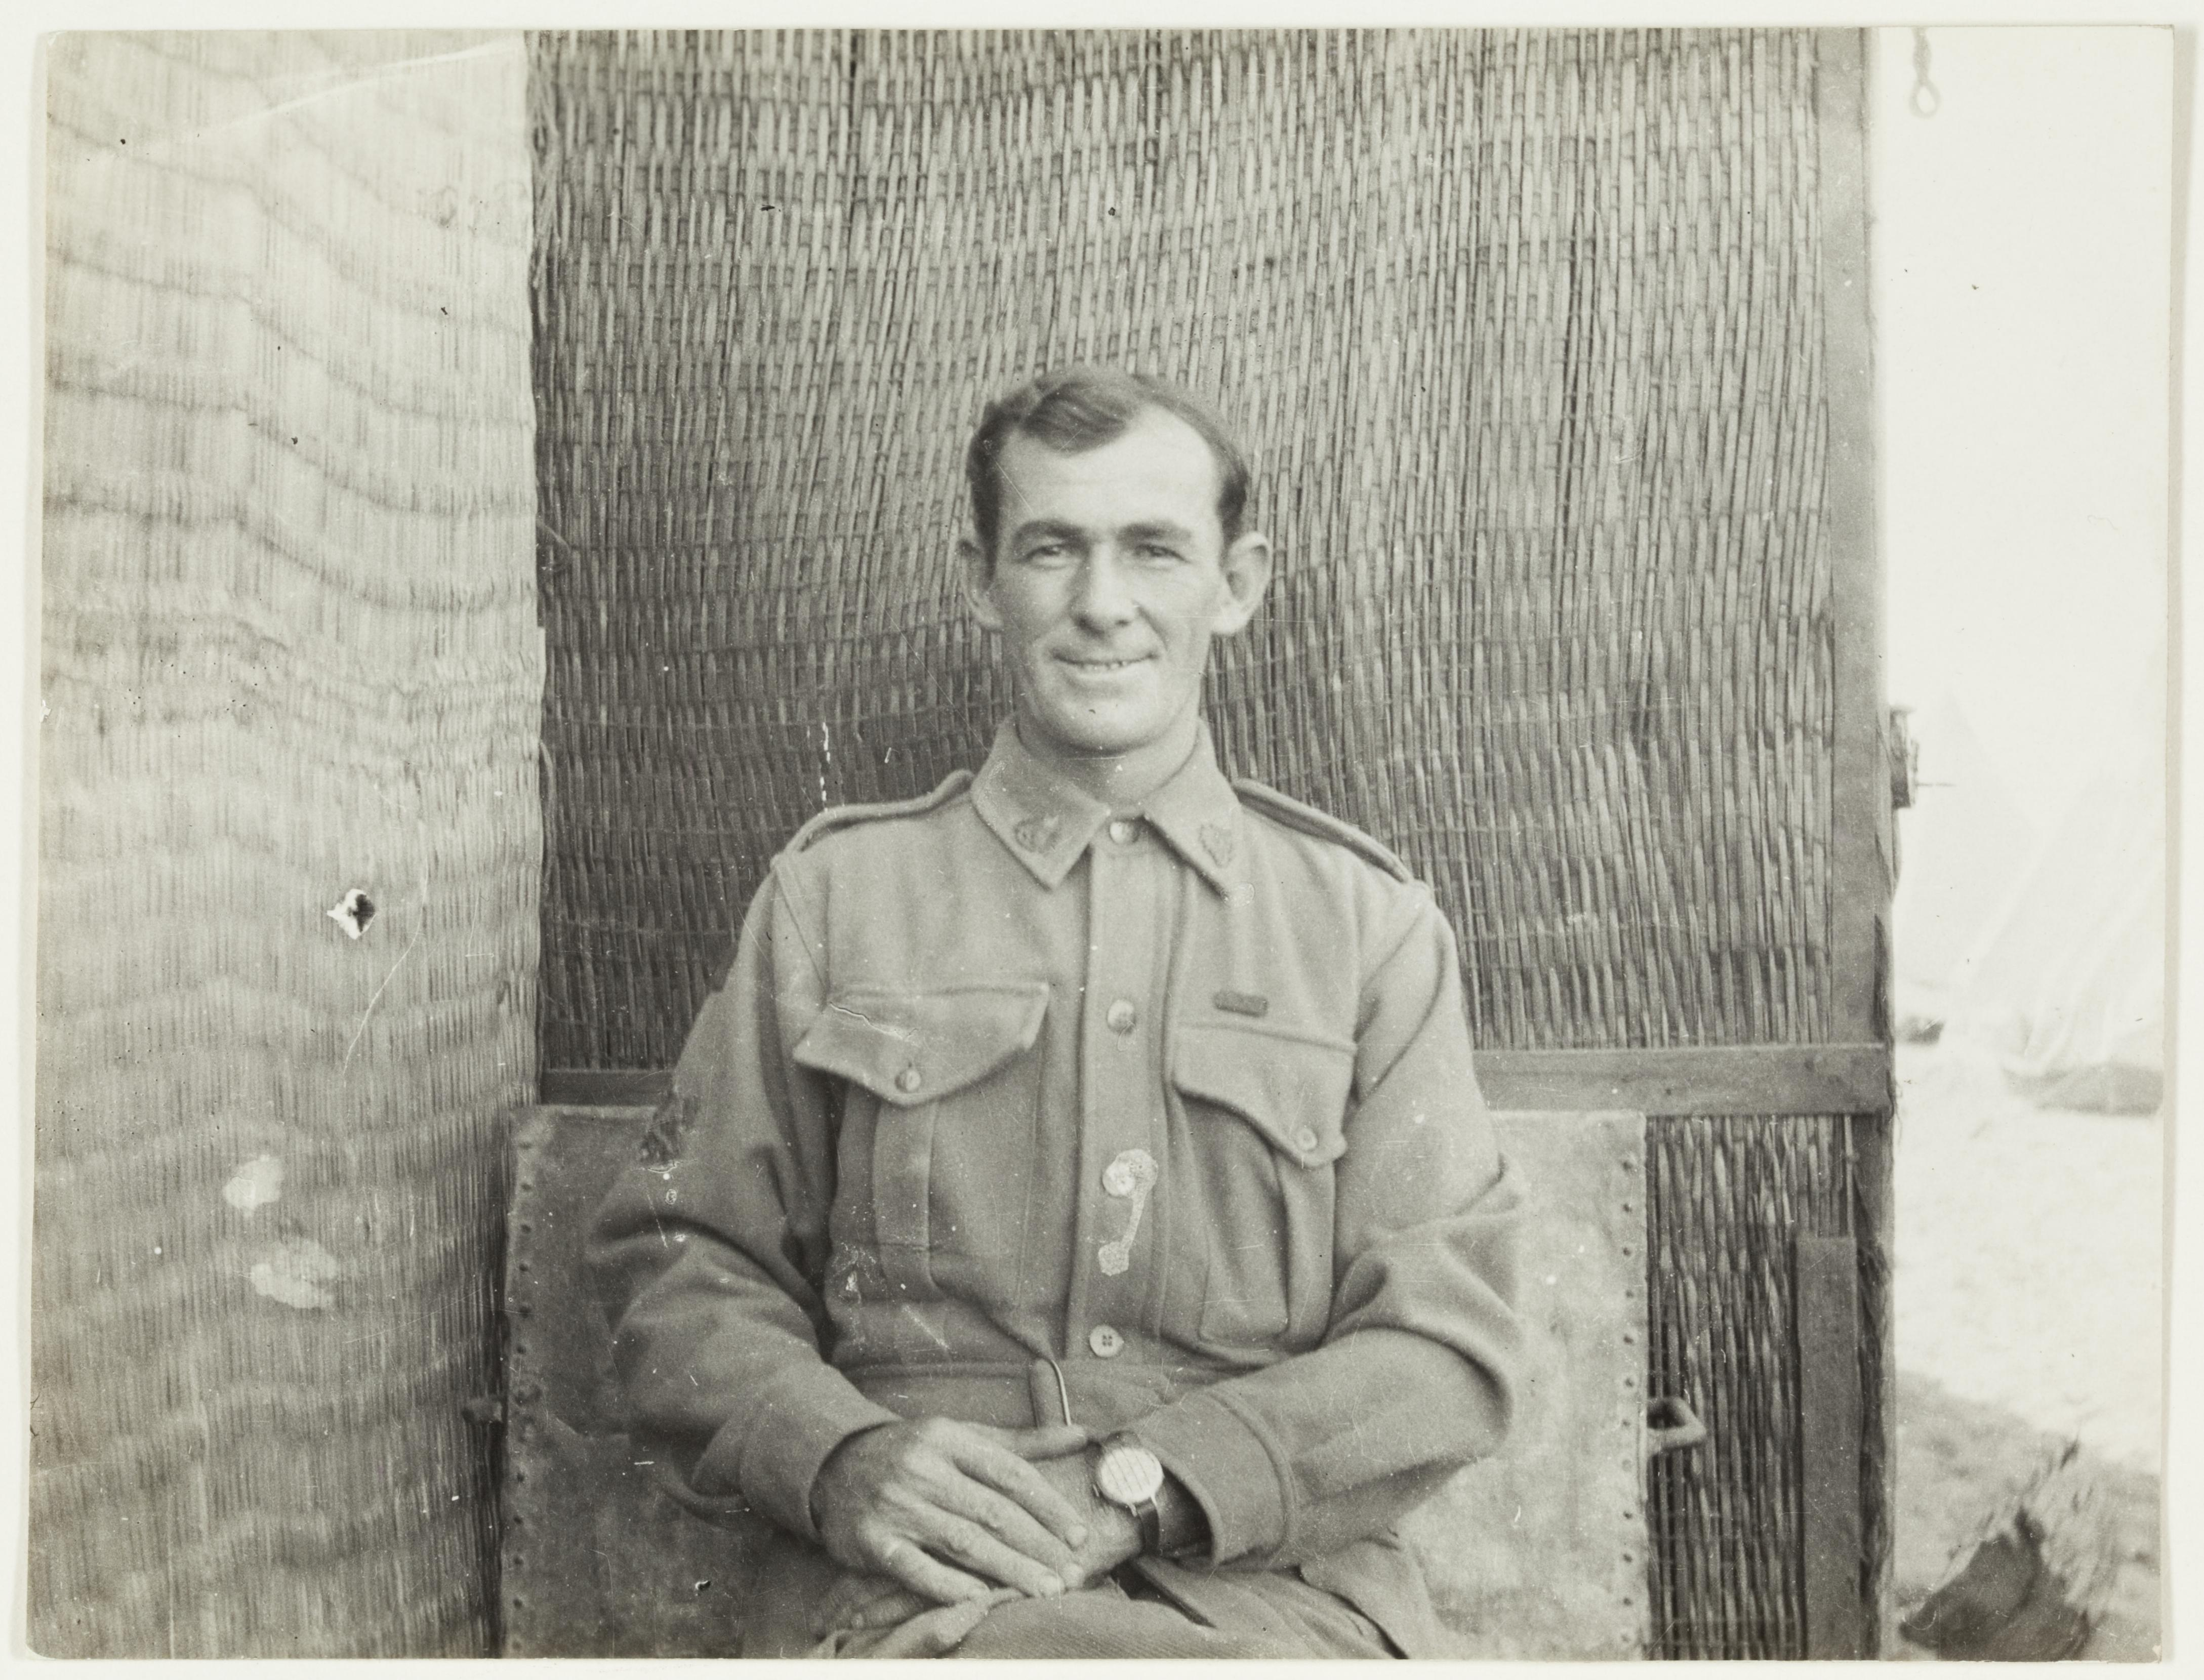 Trumpeter Smith  by J.F. Smith of the 7th Light Horse in Egypt and Palestine, c. 1914-1918